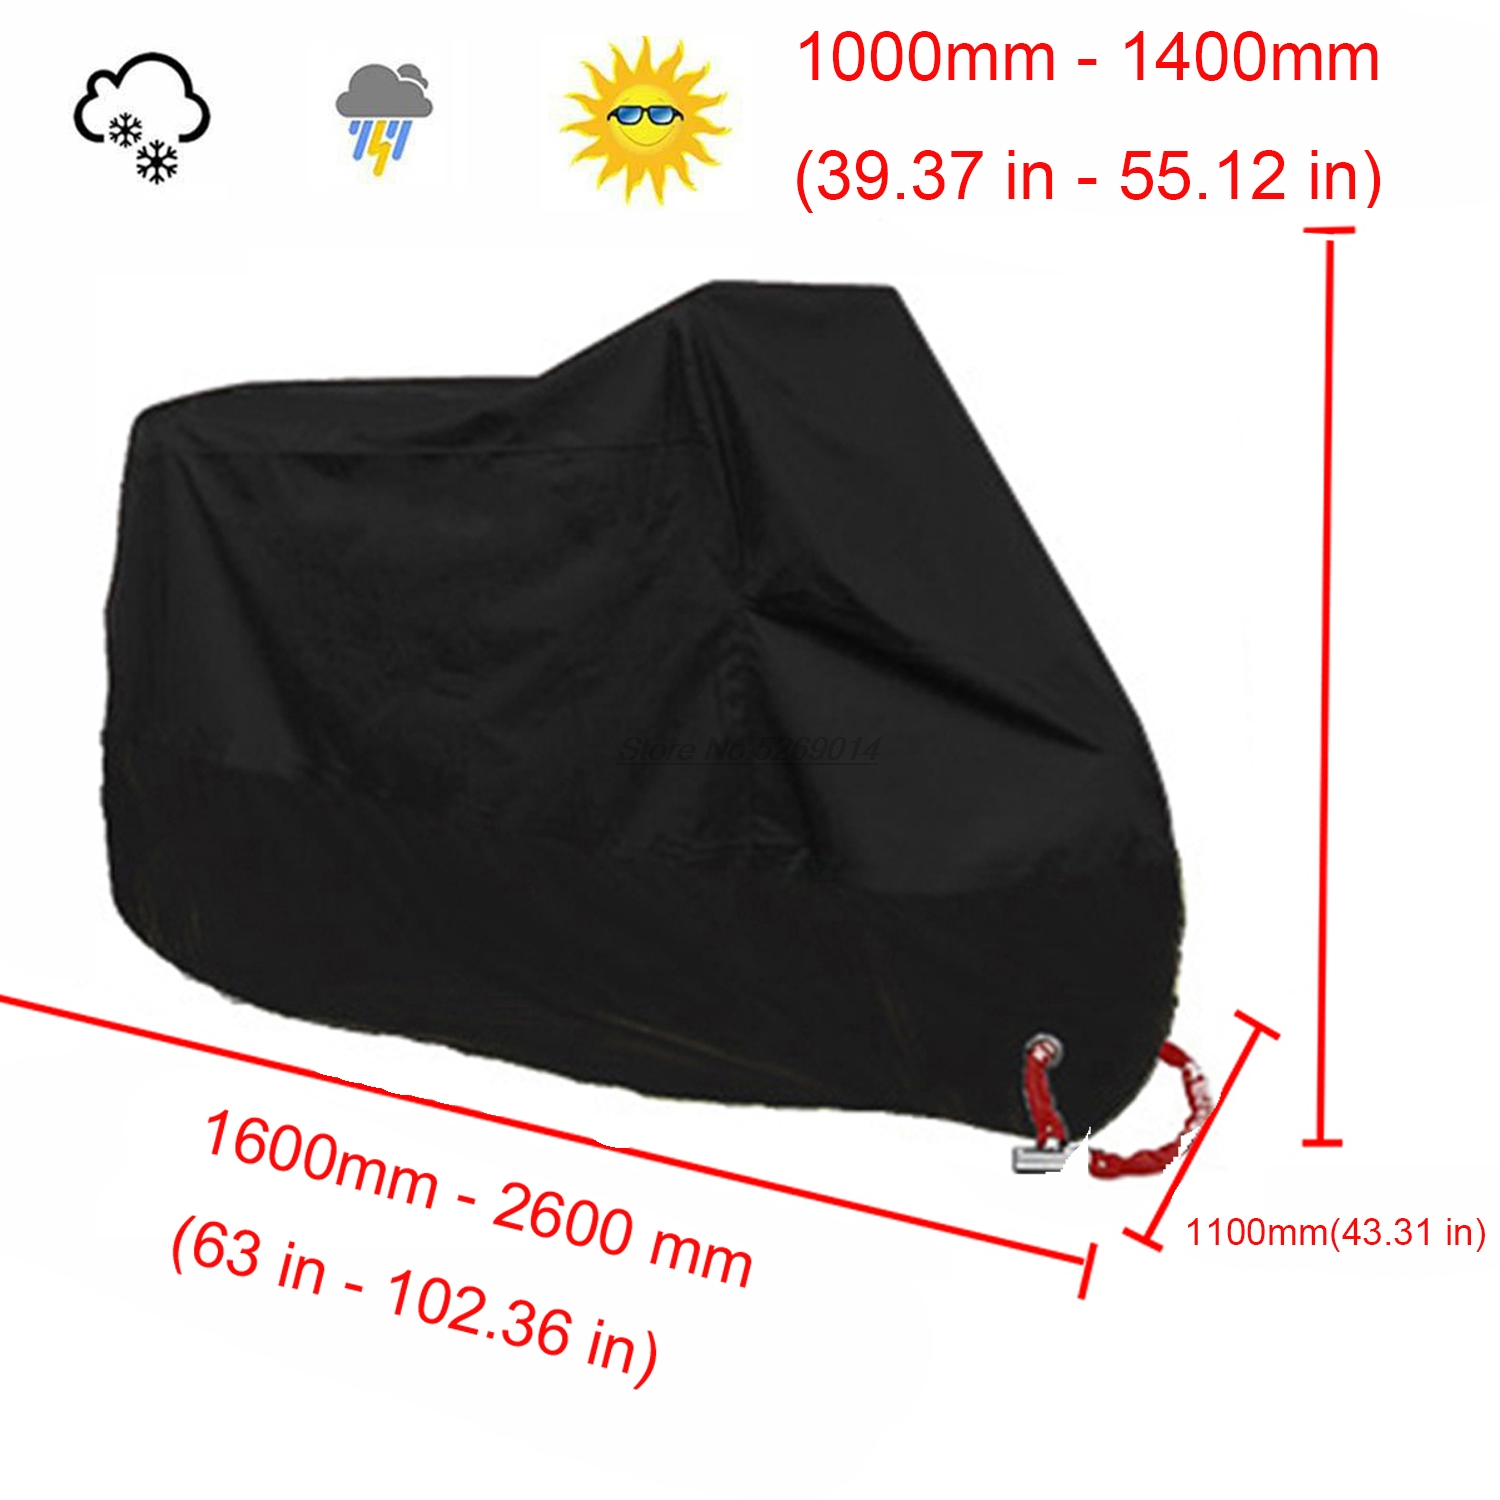 Motorcycle covers UV anti for honda vtr 1000f yamaha <font><b>r1</b></font> <font><b>2009</b></font> maxsym r 1200 gs lc ktm 1090 adventure yamaha aerox 155 KTM image